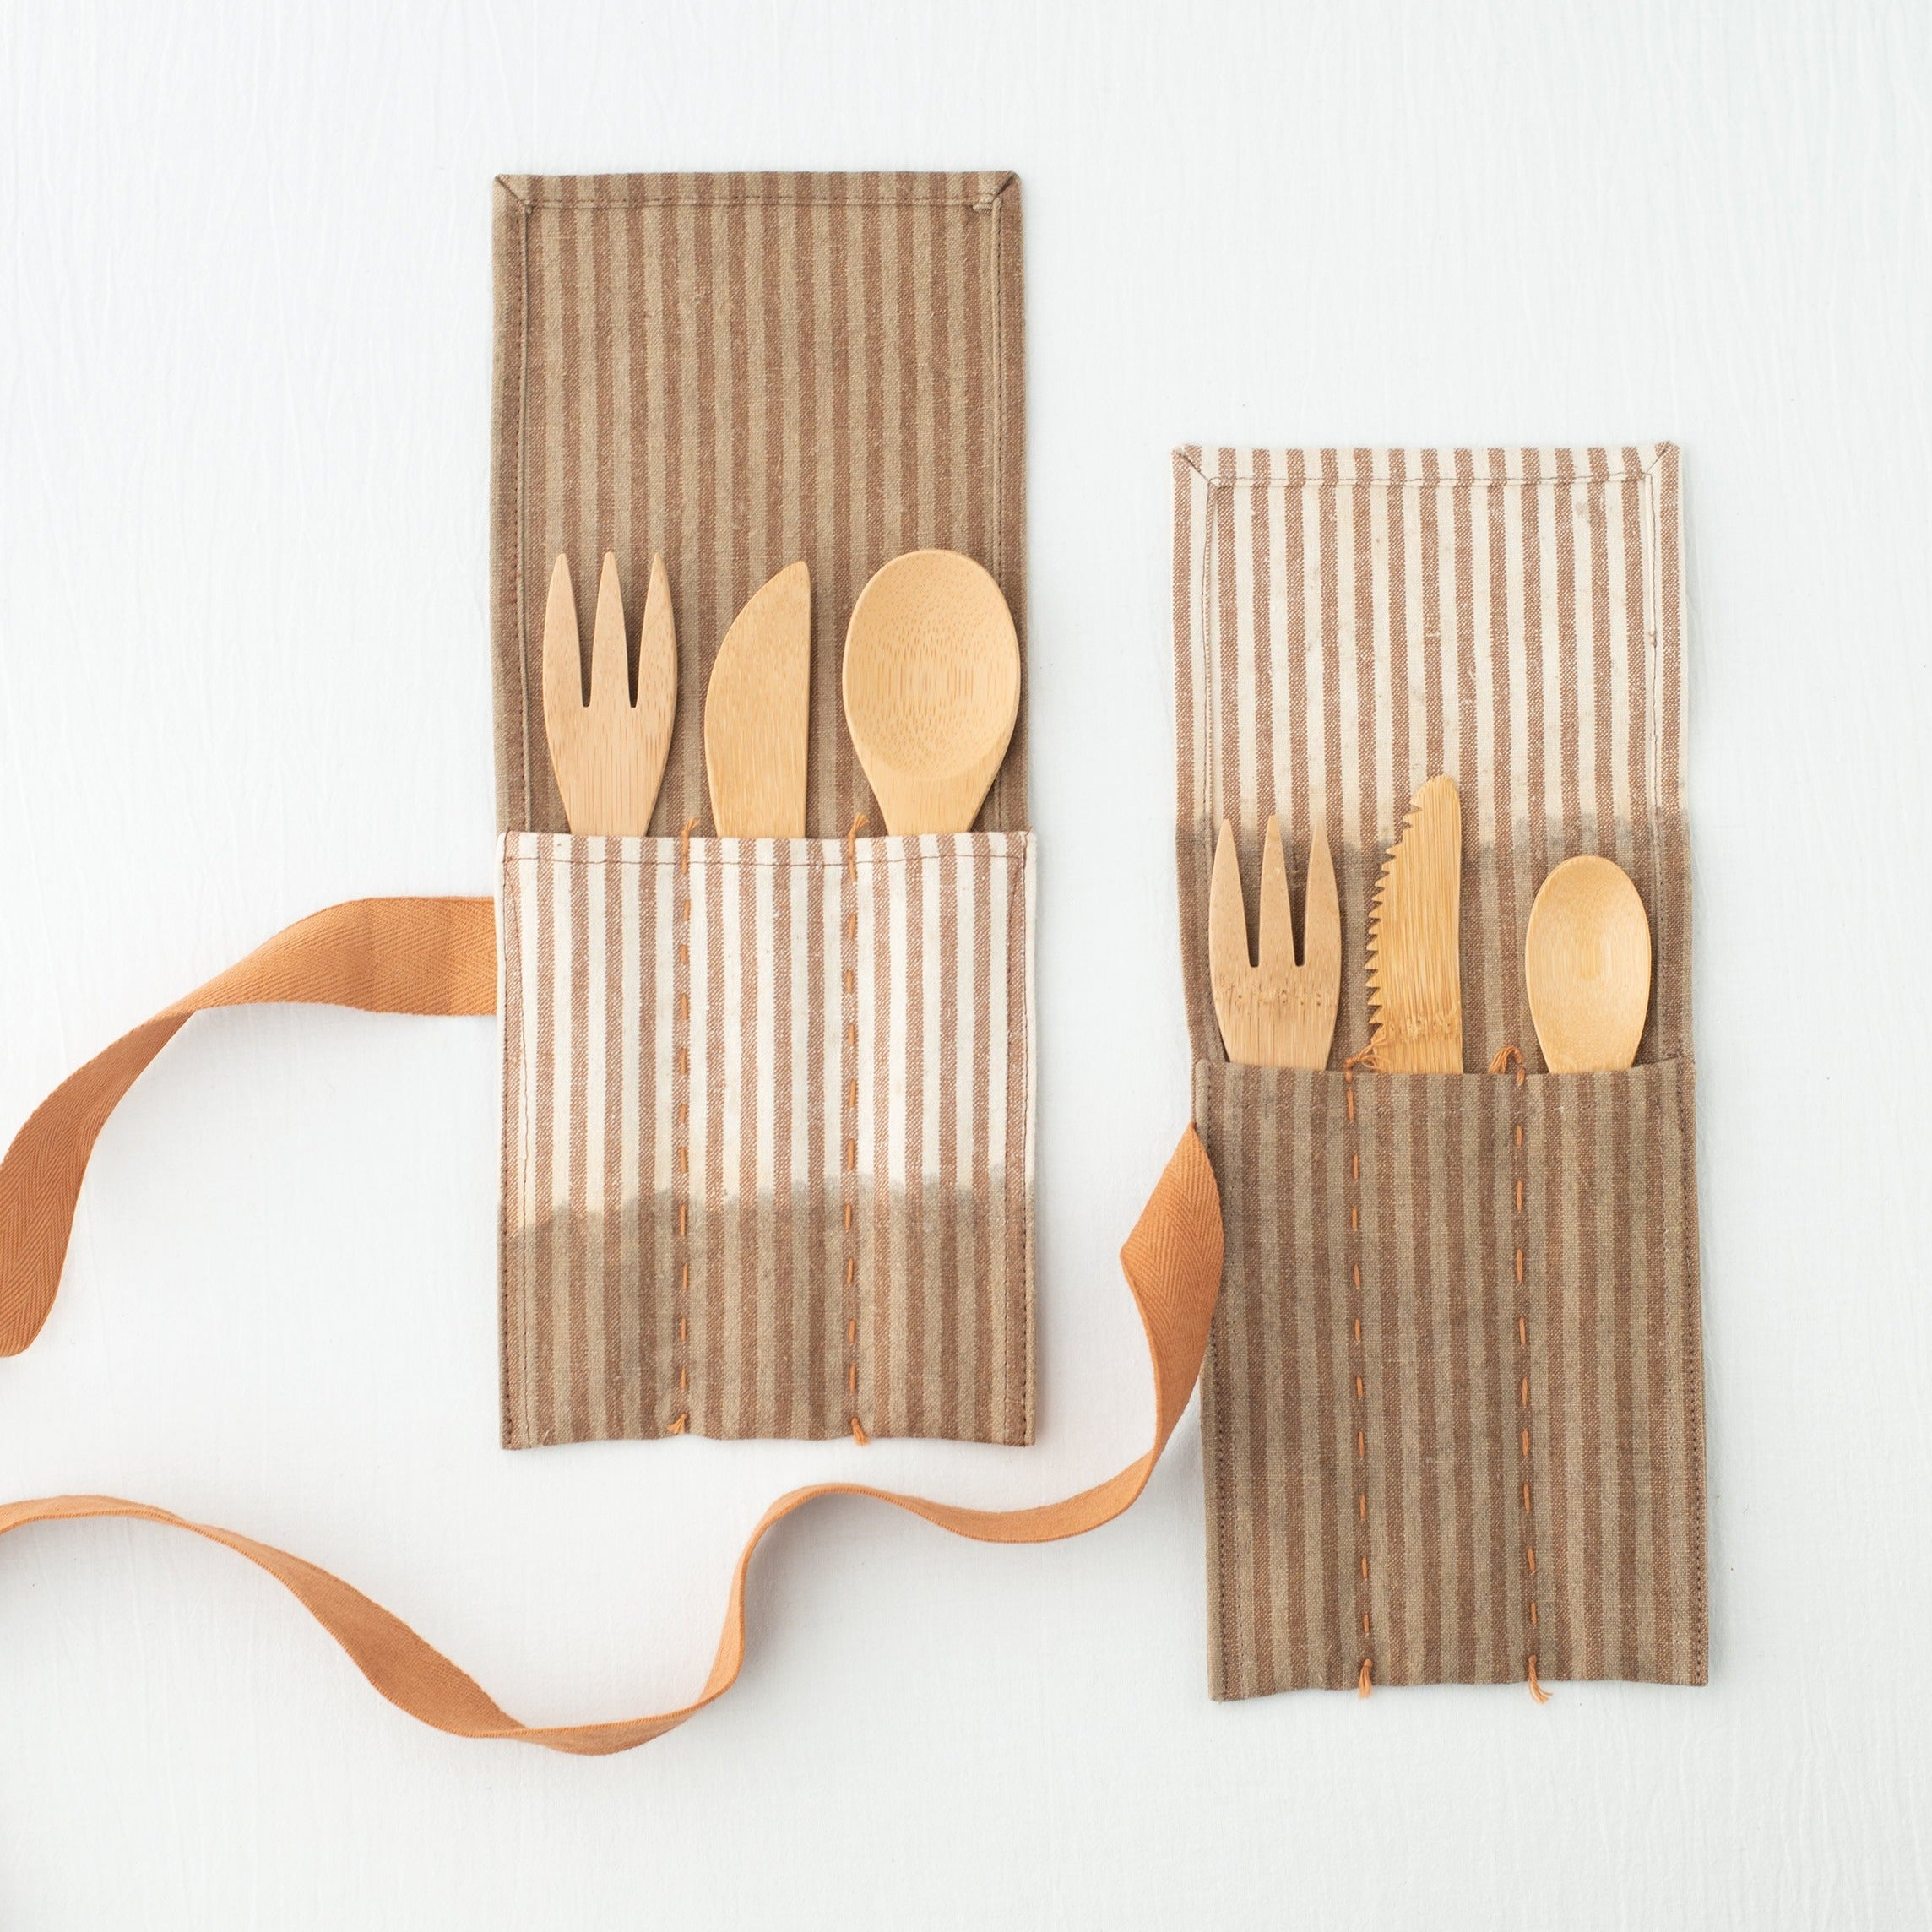 AVFKW X Making Magazine - The Everyday Utensil Roll Kit - Just restocked!